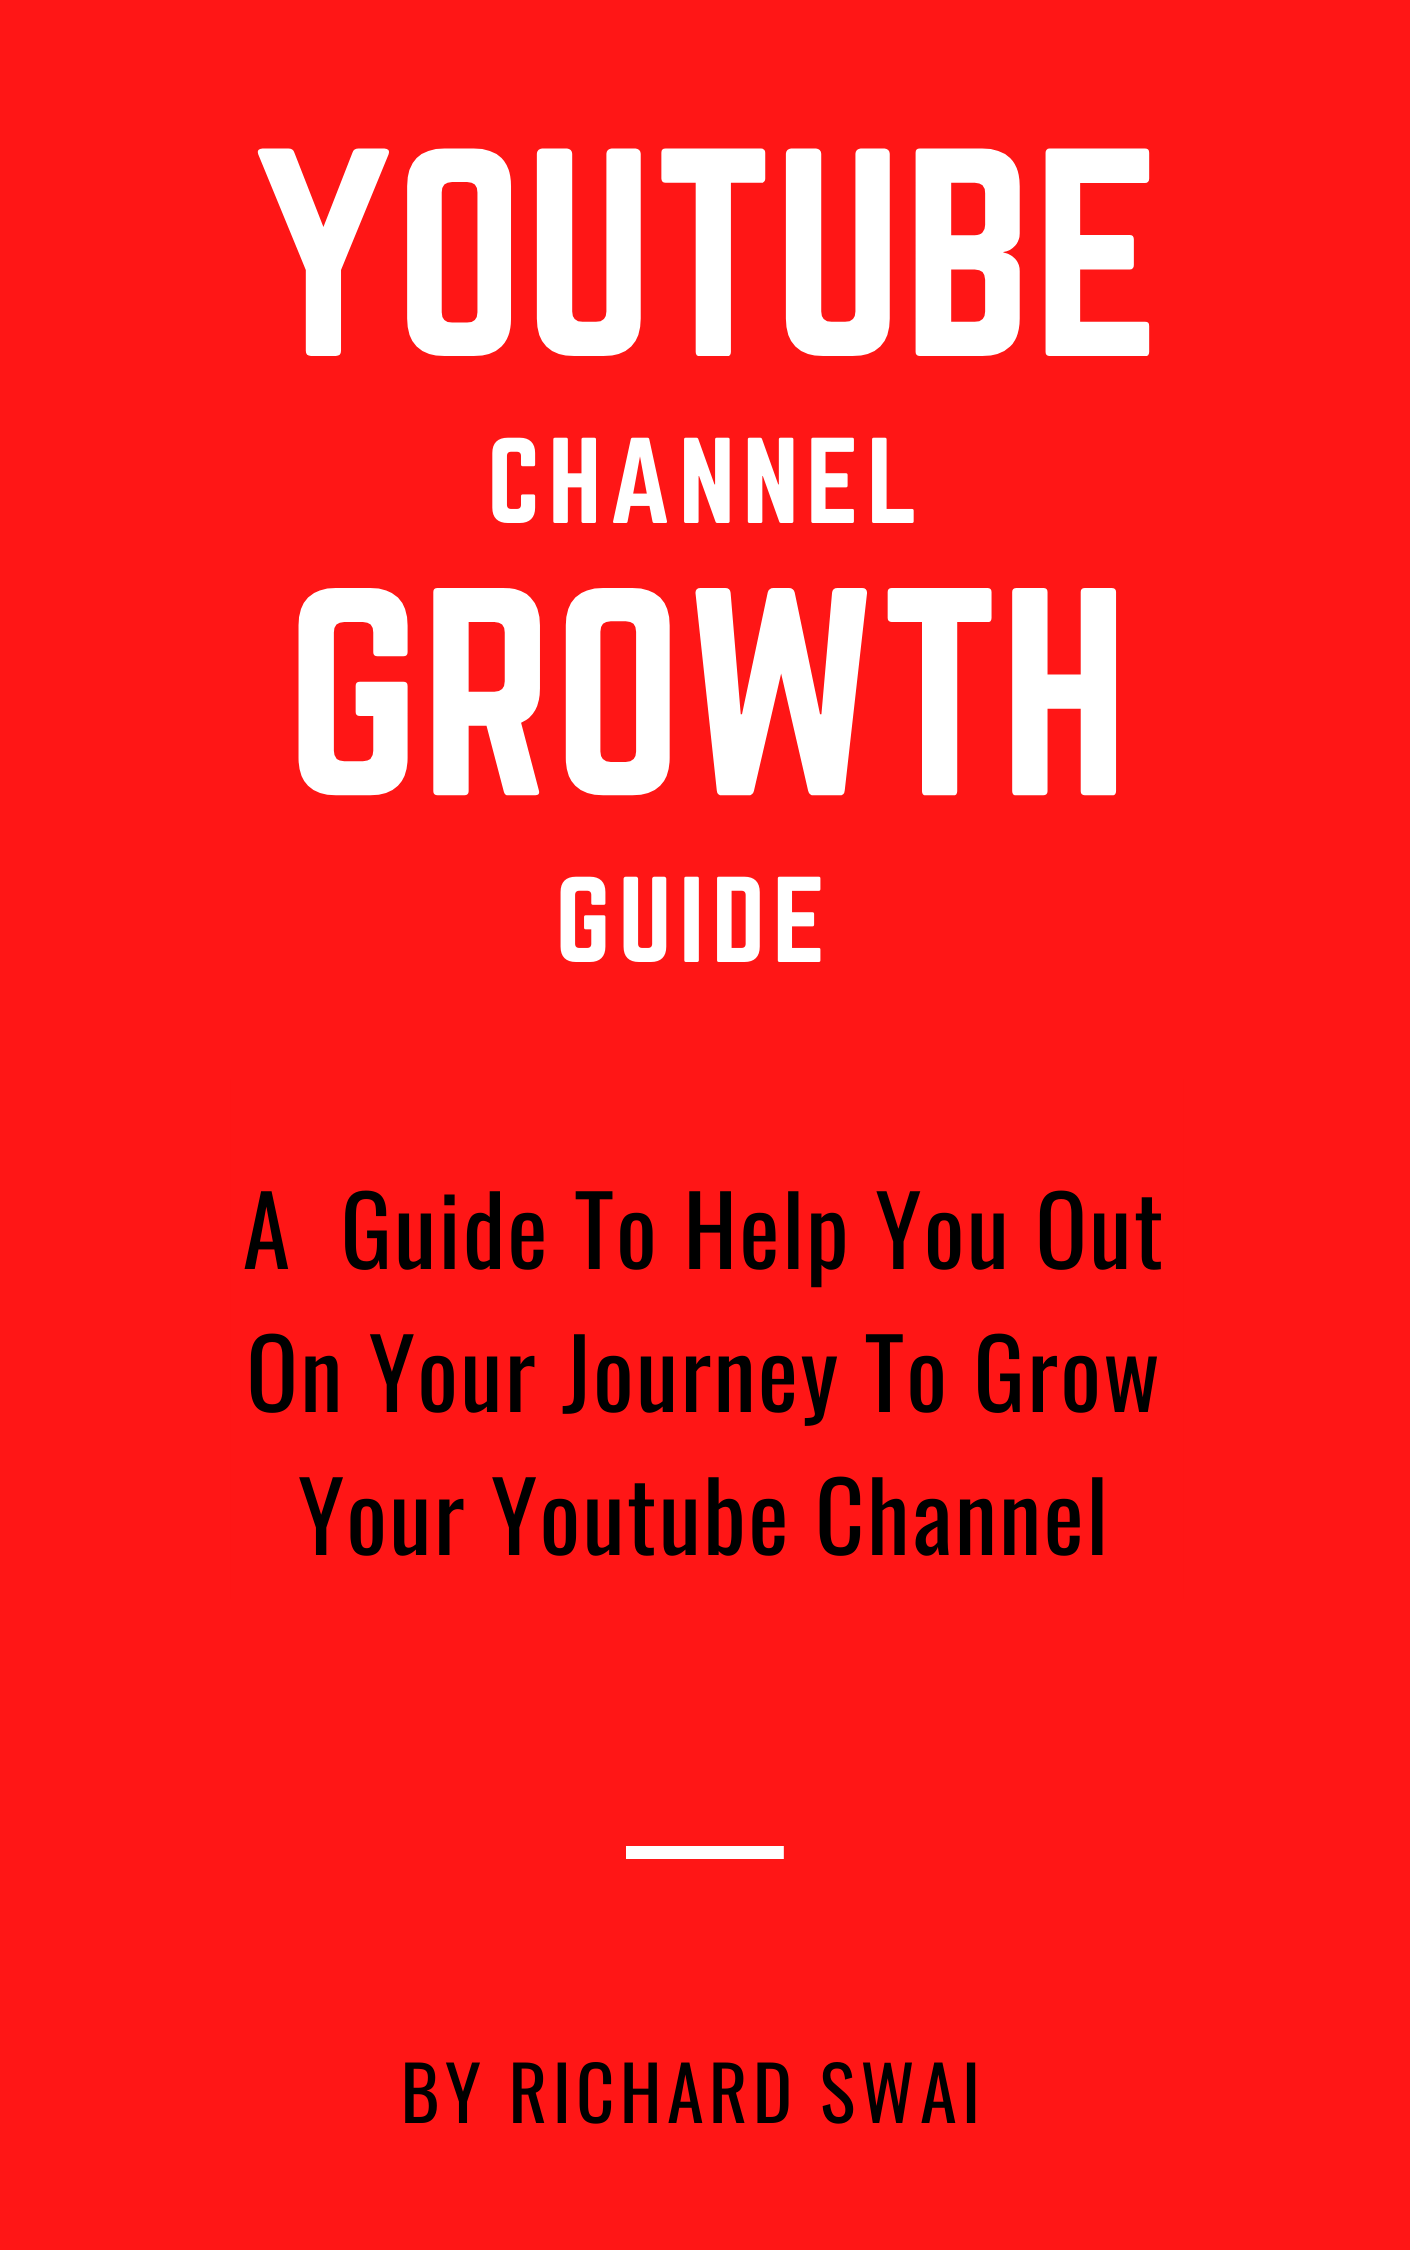 Youtube Channel Growth Guide Ebook